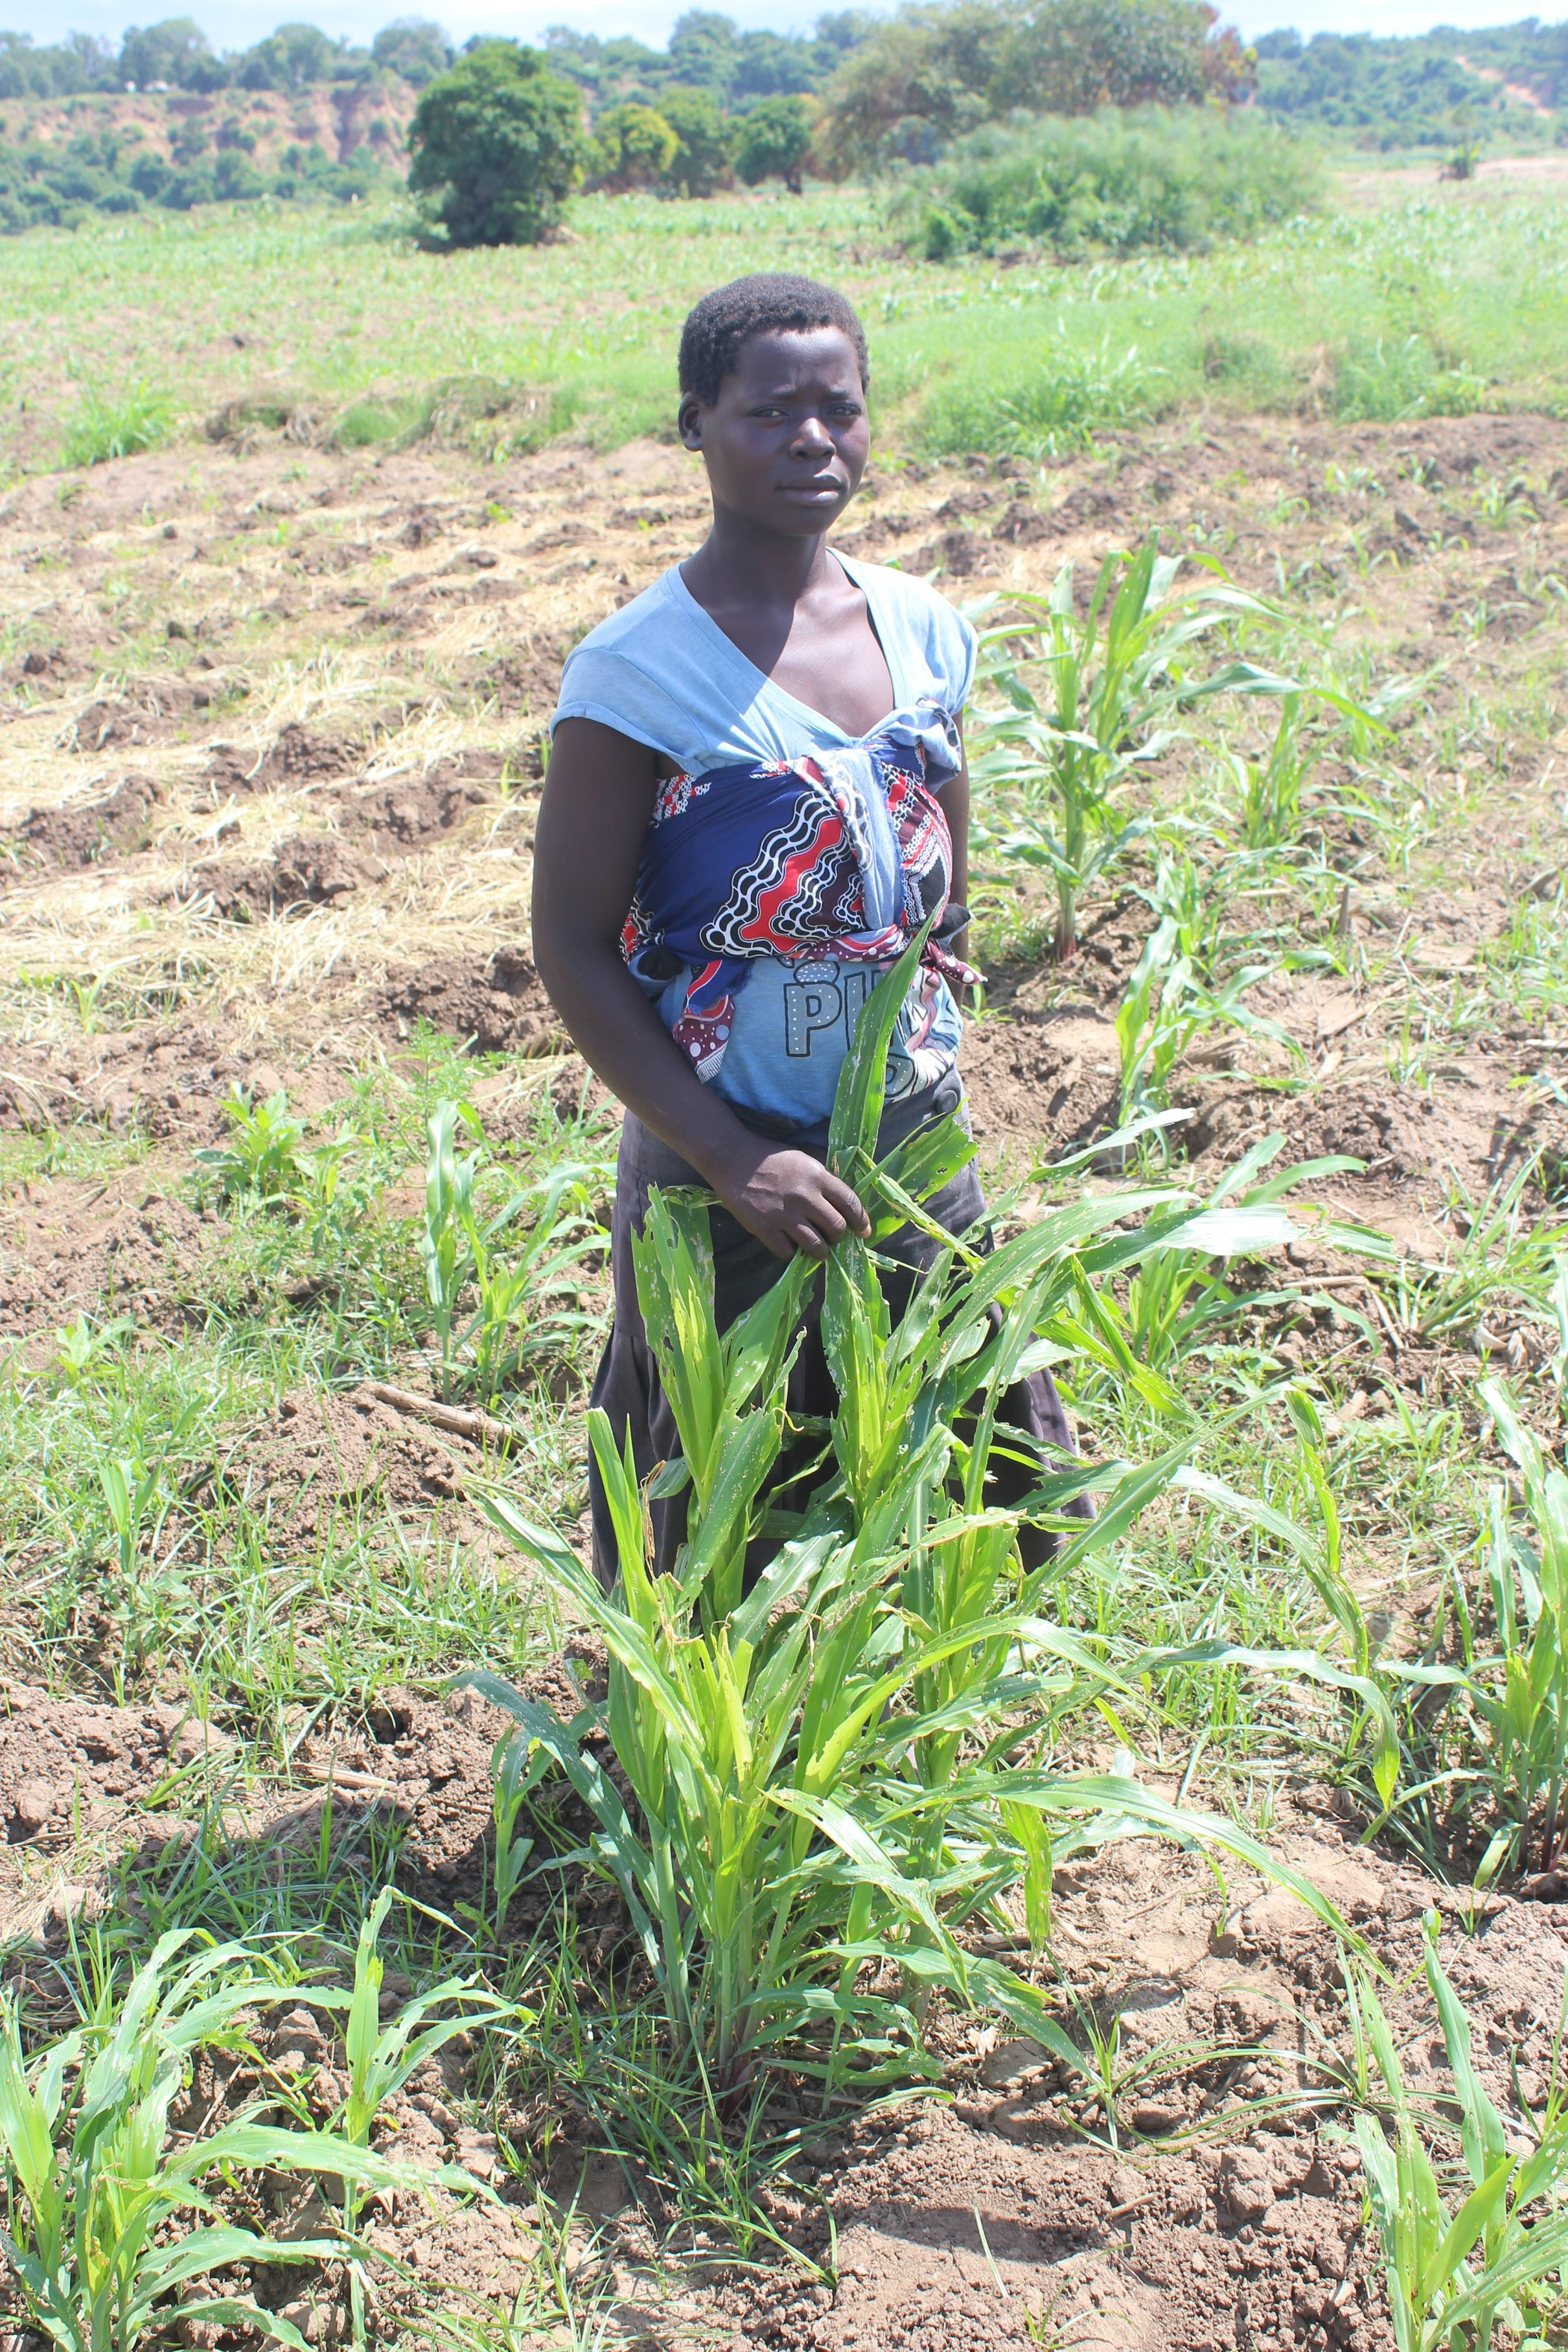 Female farmer standing forlornly by armyworm-affected maize plants.